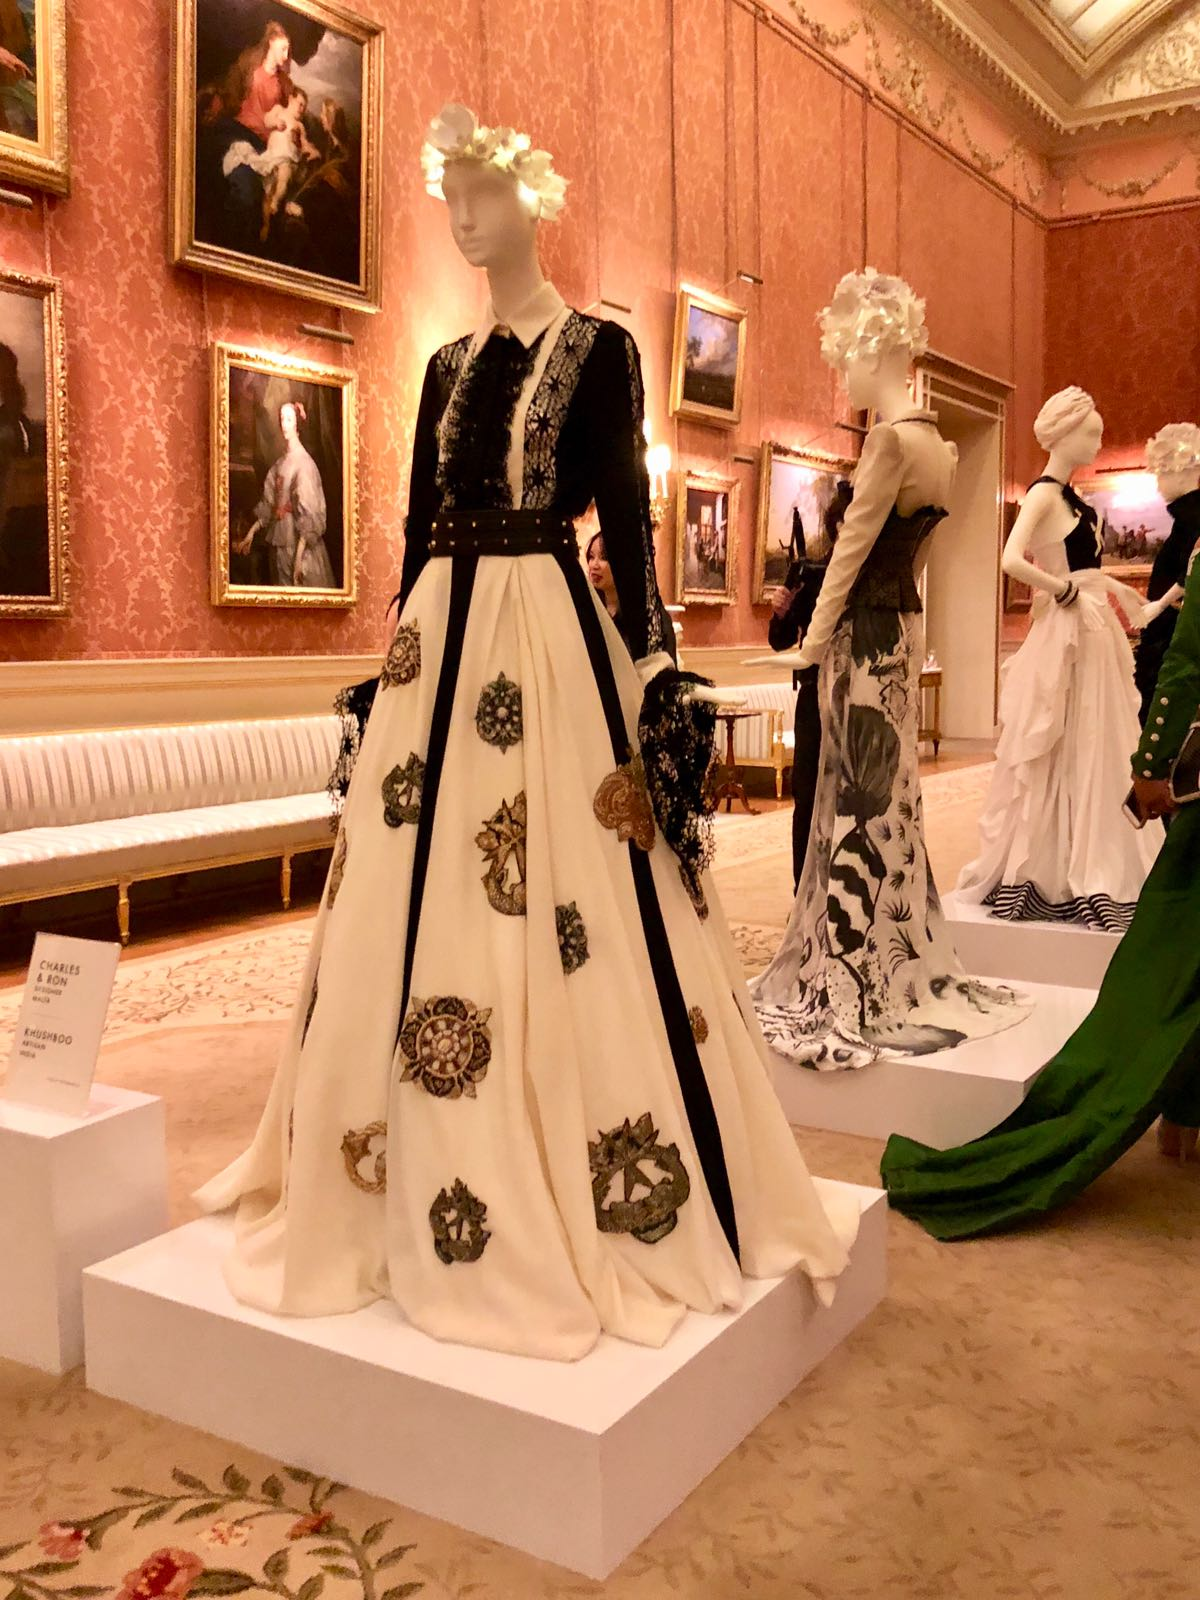 The gown in Buckingham Palace